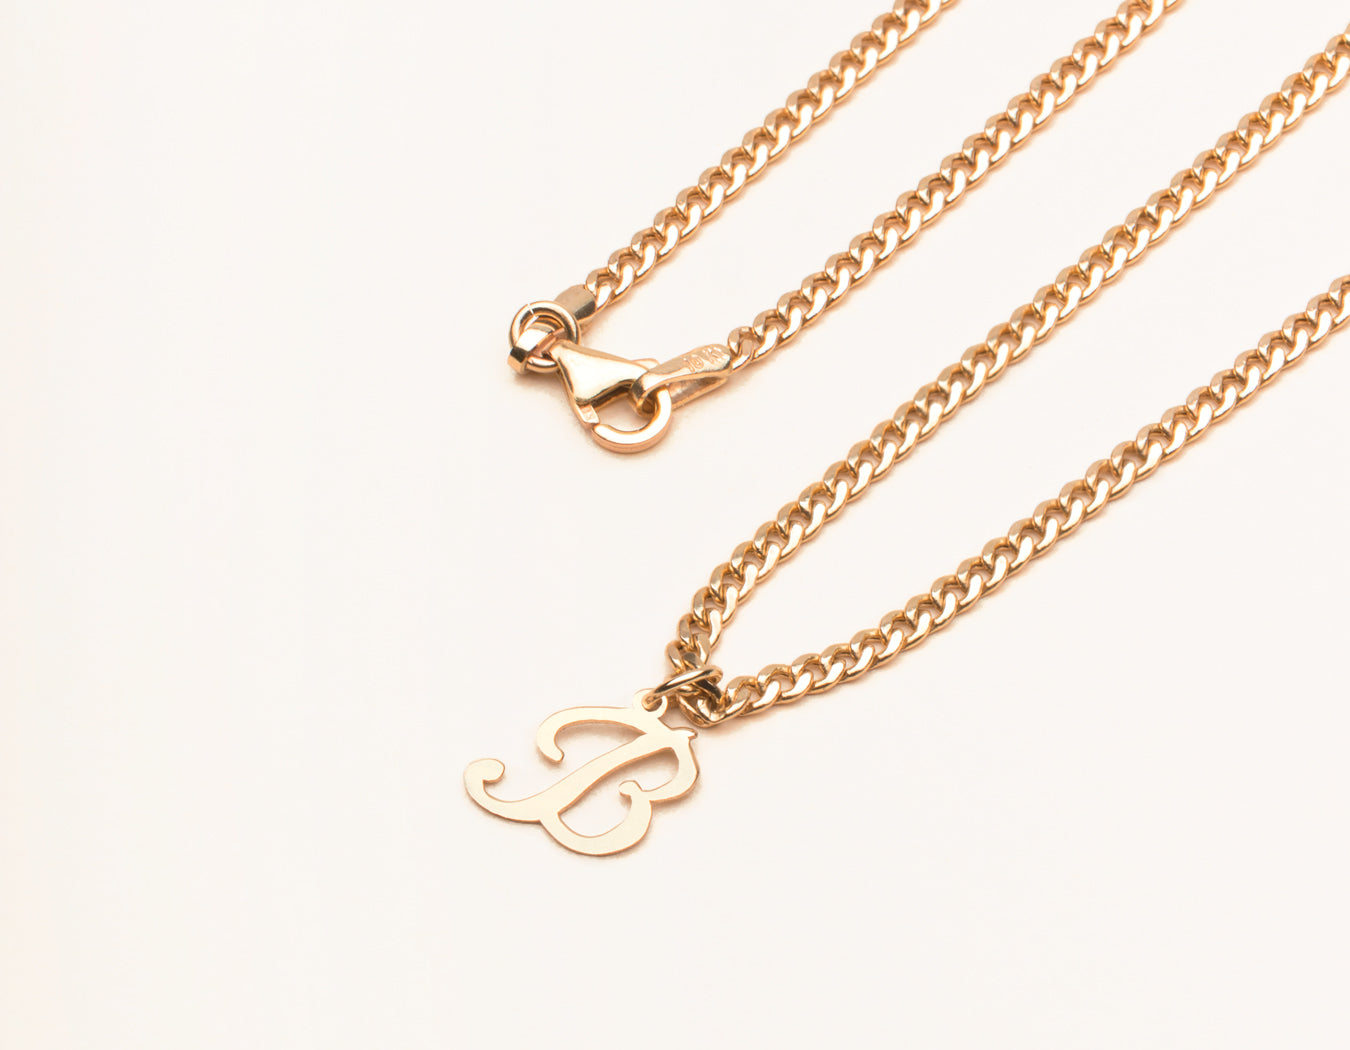 vrai and Oro simple personalized 14k Solid Gold Letter Pendant Necklace on cuban link chain with lobster clasp, 14K Rose Gold